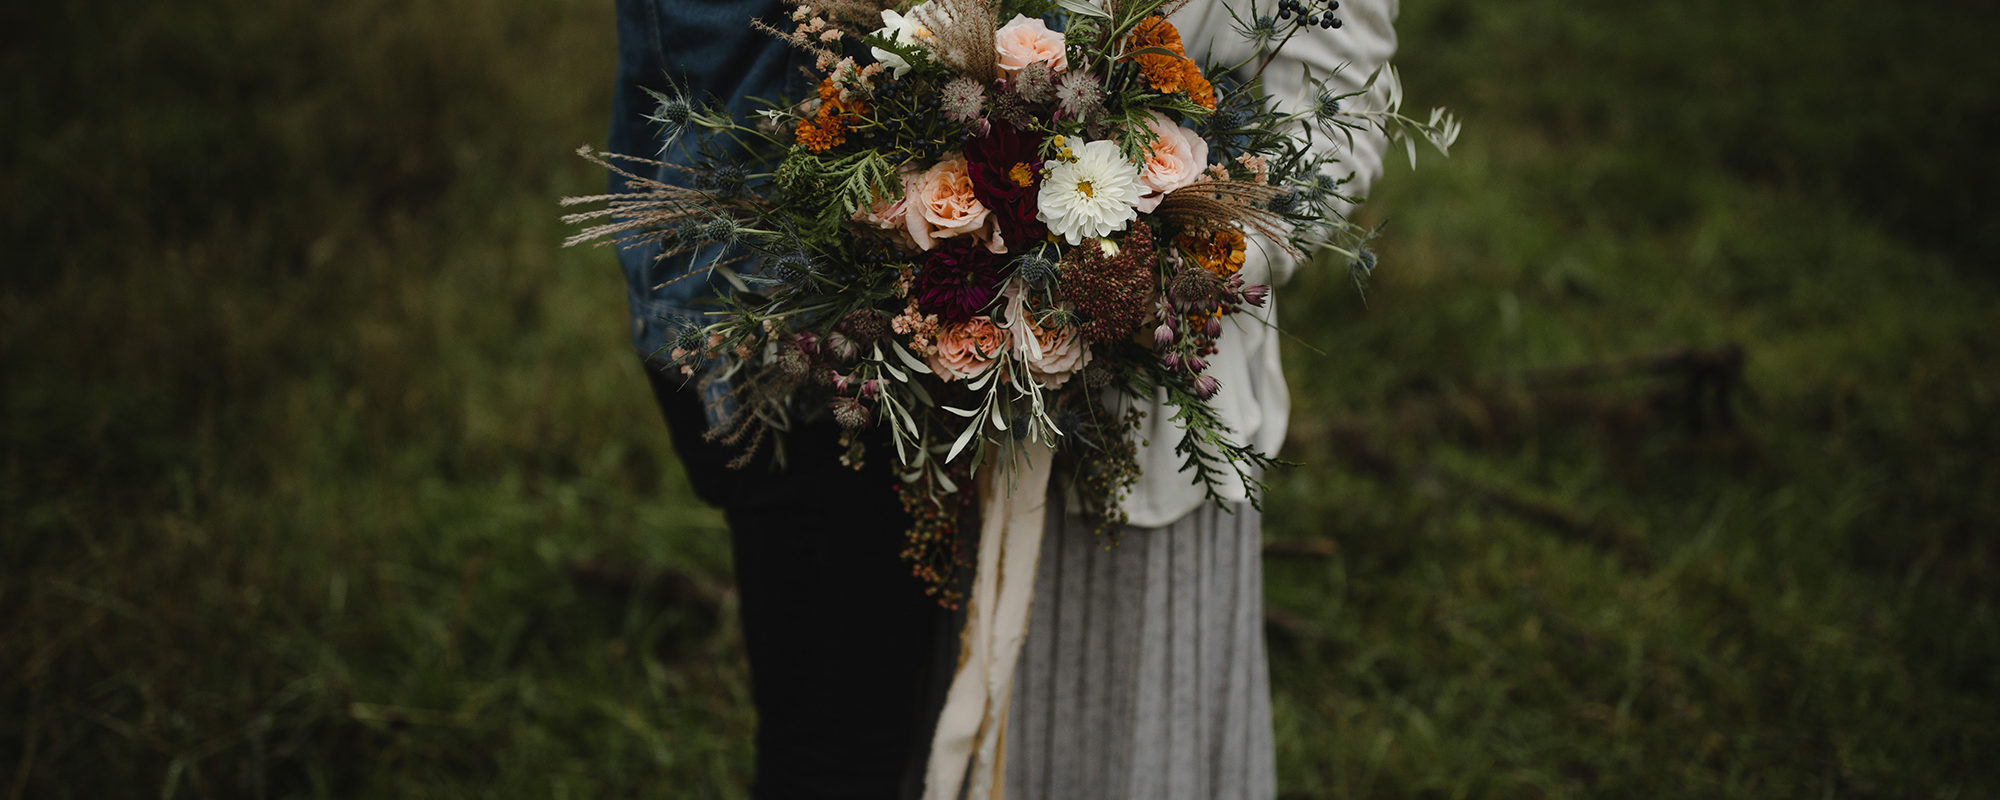 Couple eloping with bride holding bridal bouquet